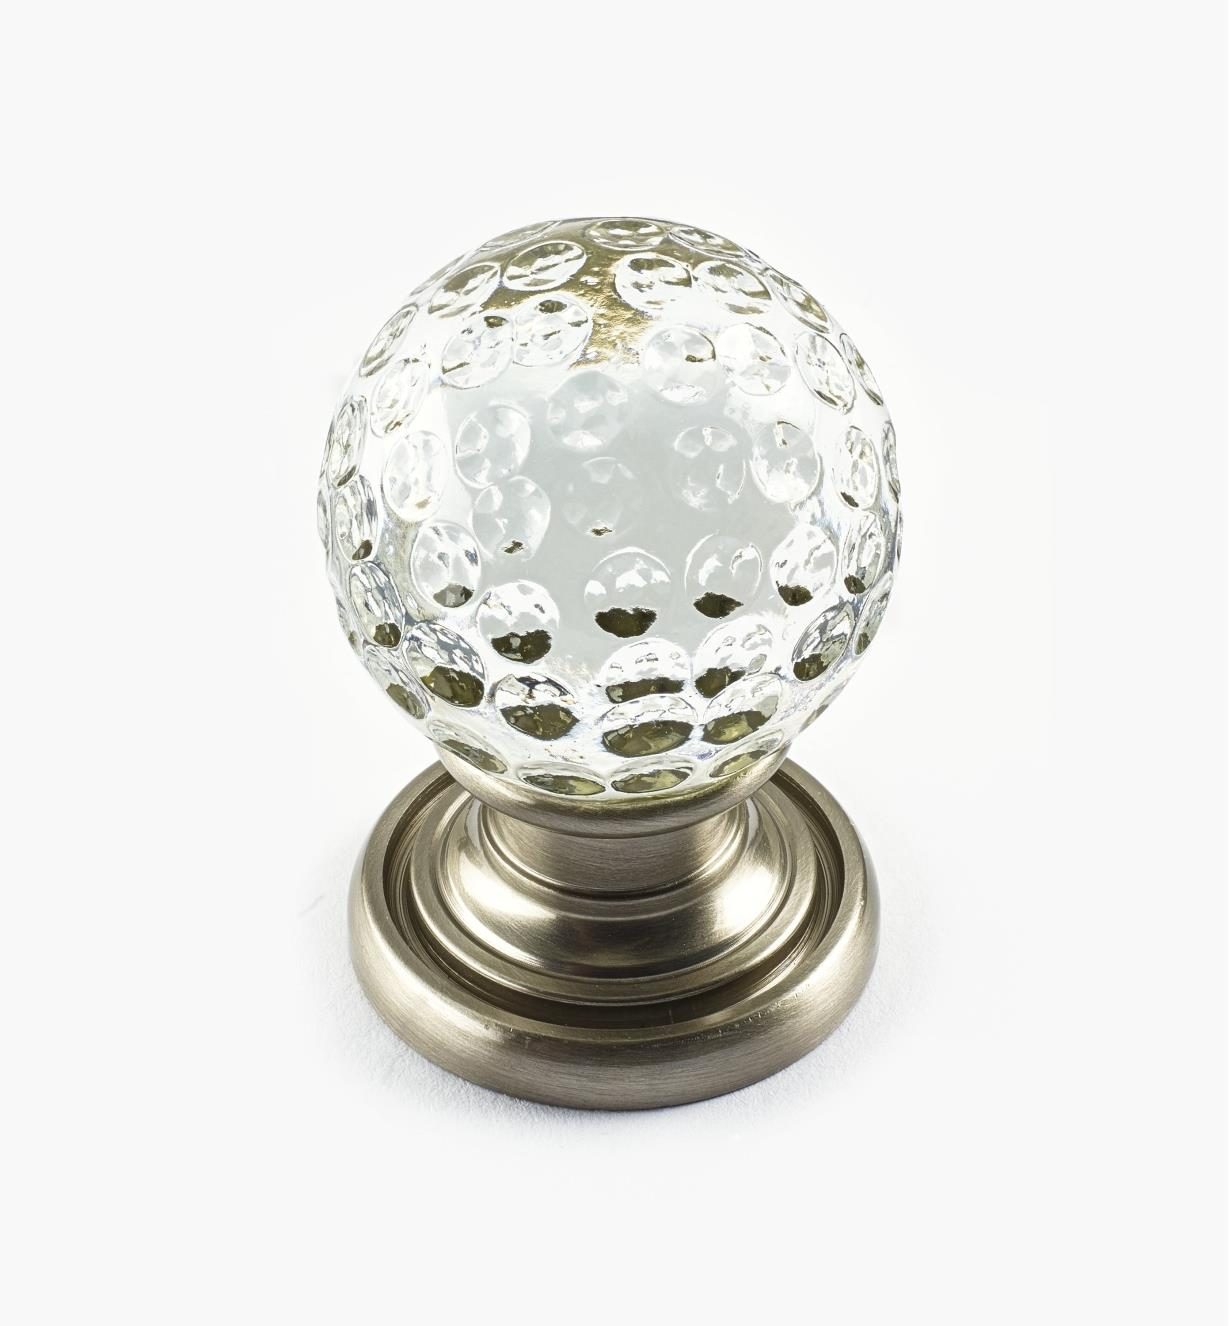 01A3835 - Dimpled Glass Globe Knob, 29mm